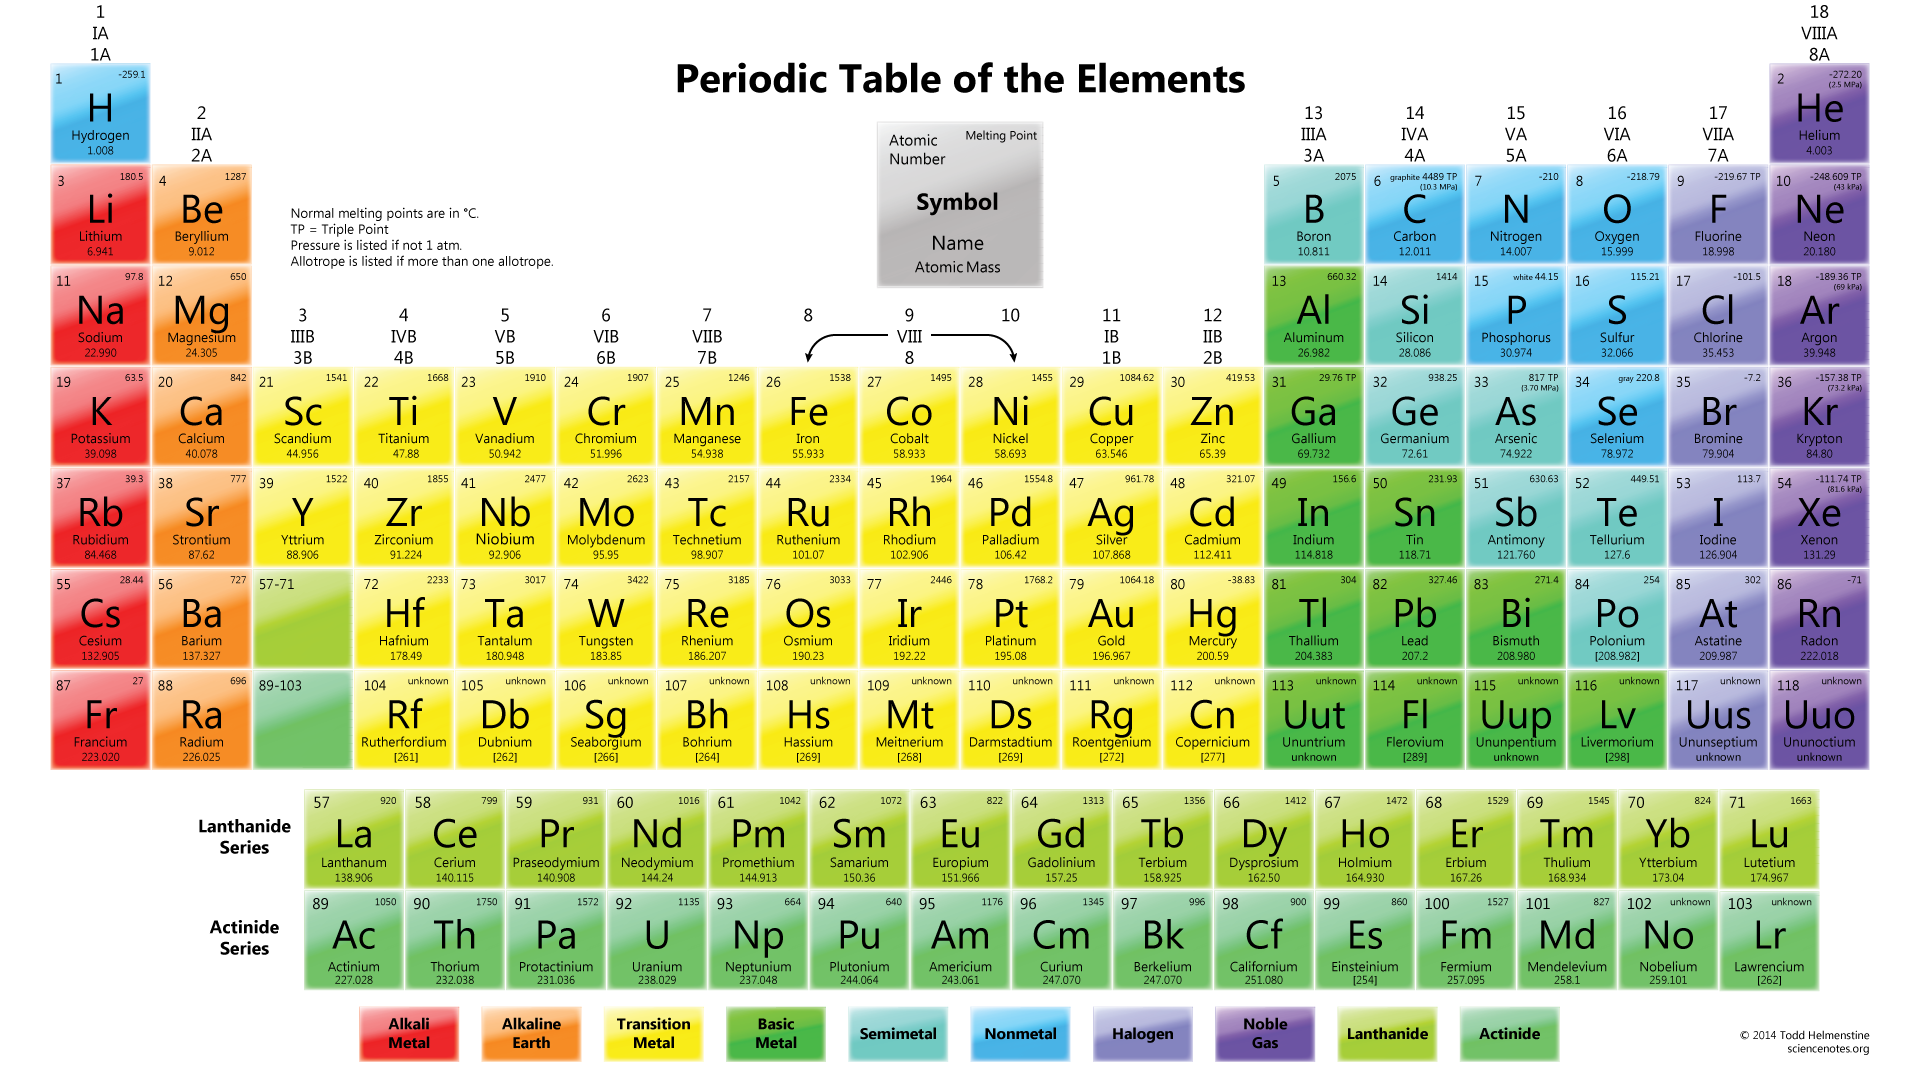 30 Printable Periodic Tables for Chemistry - Science Notes and ...